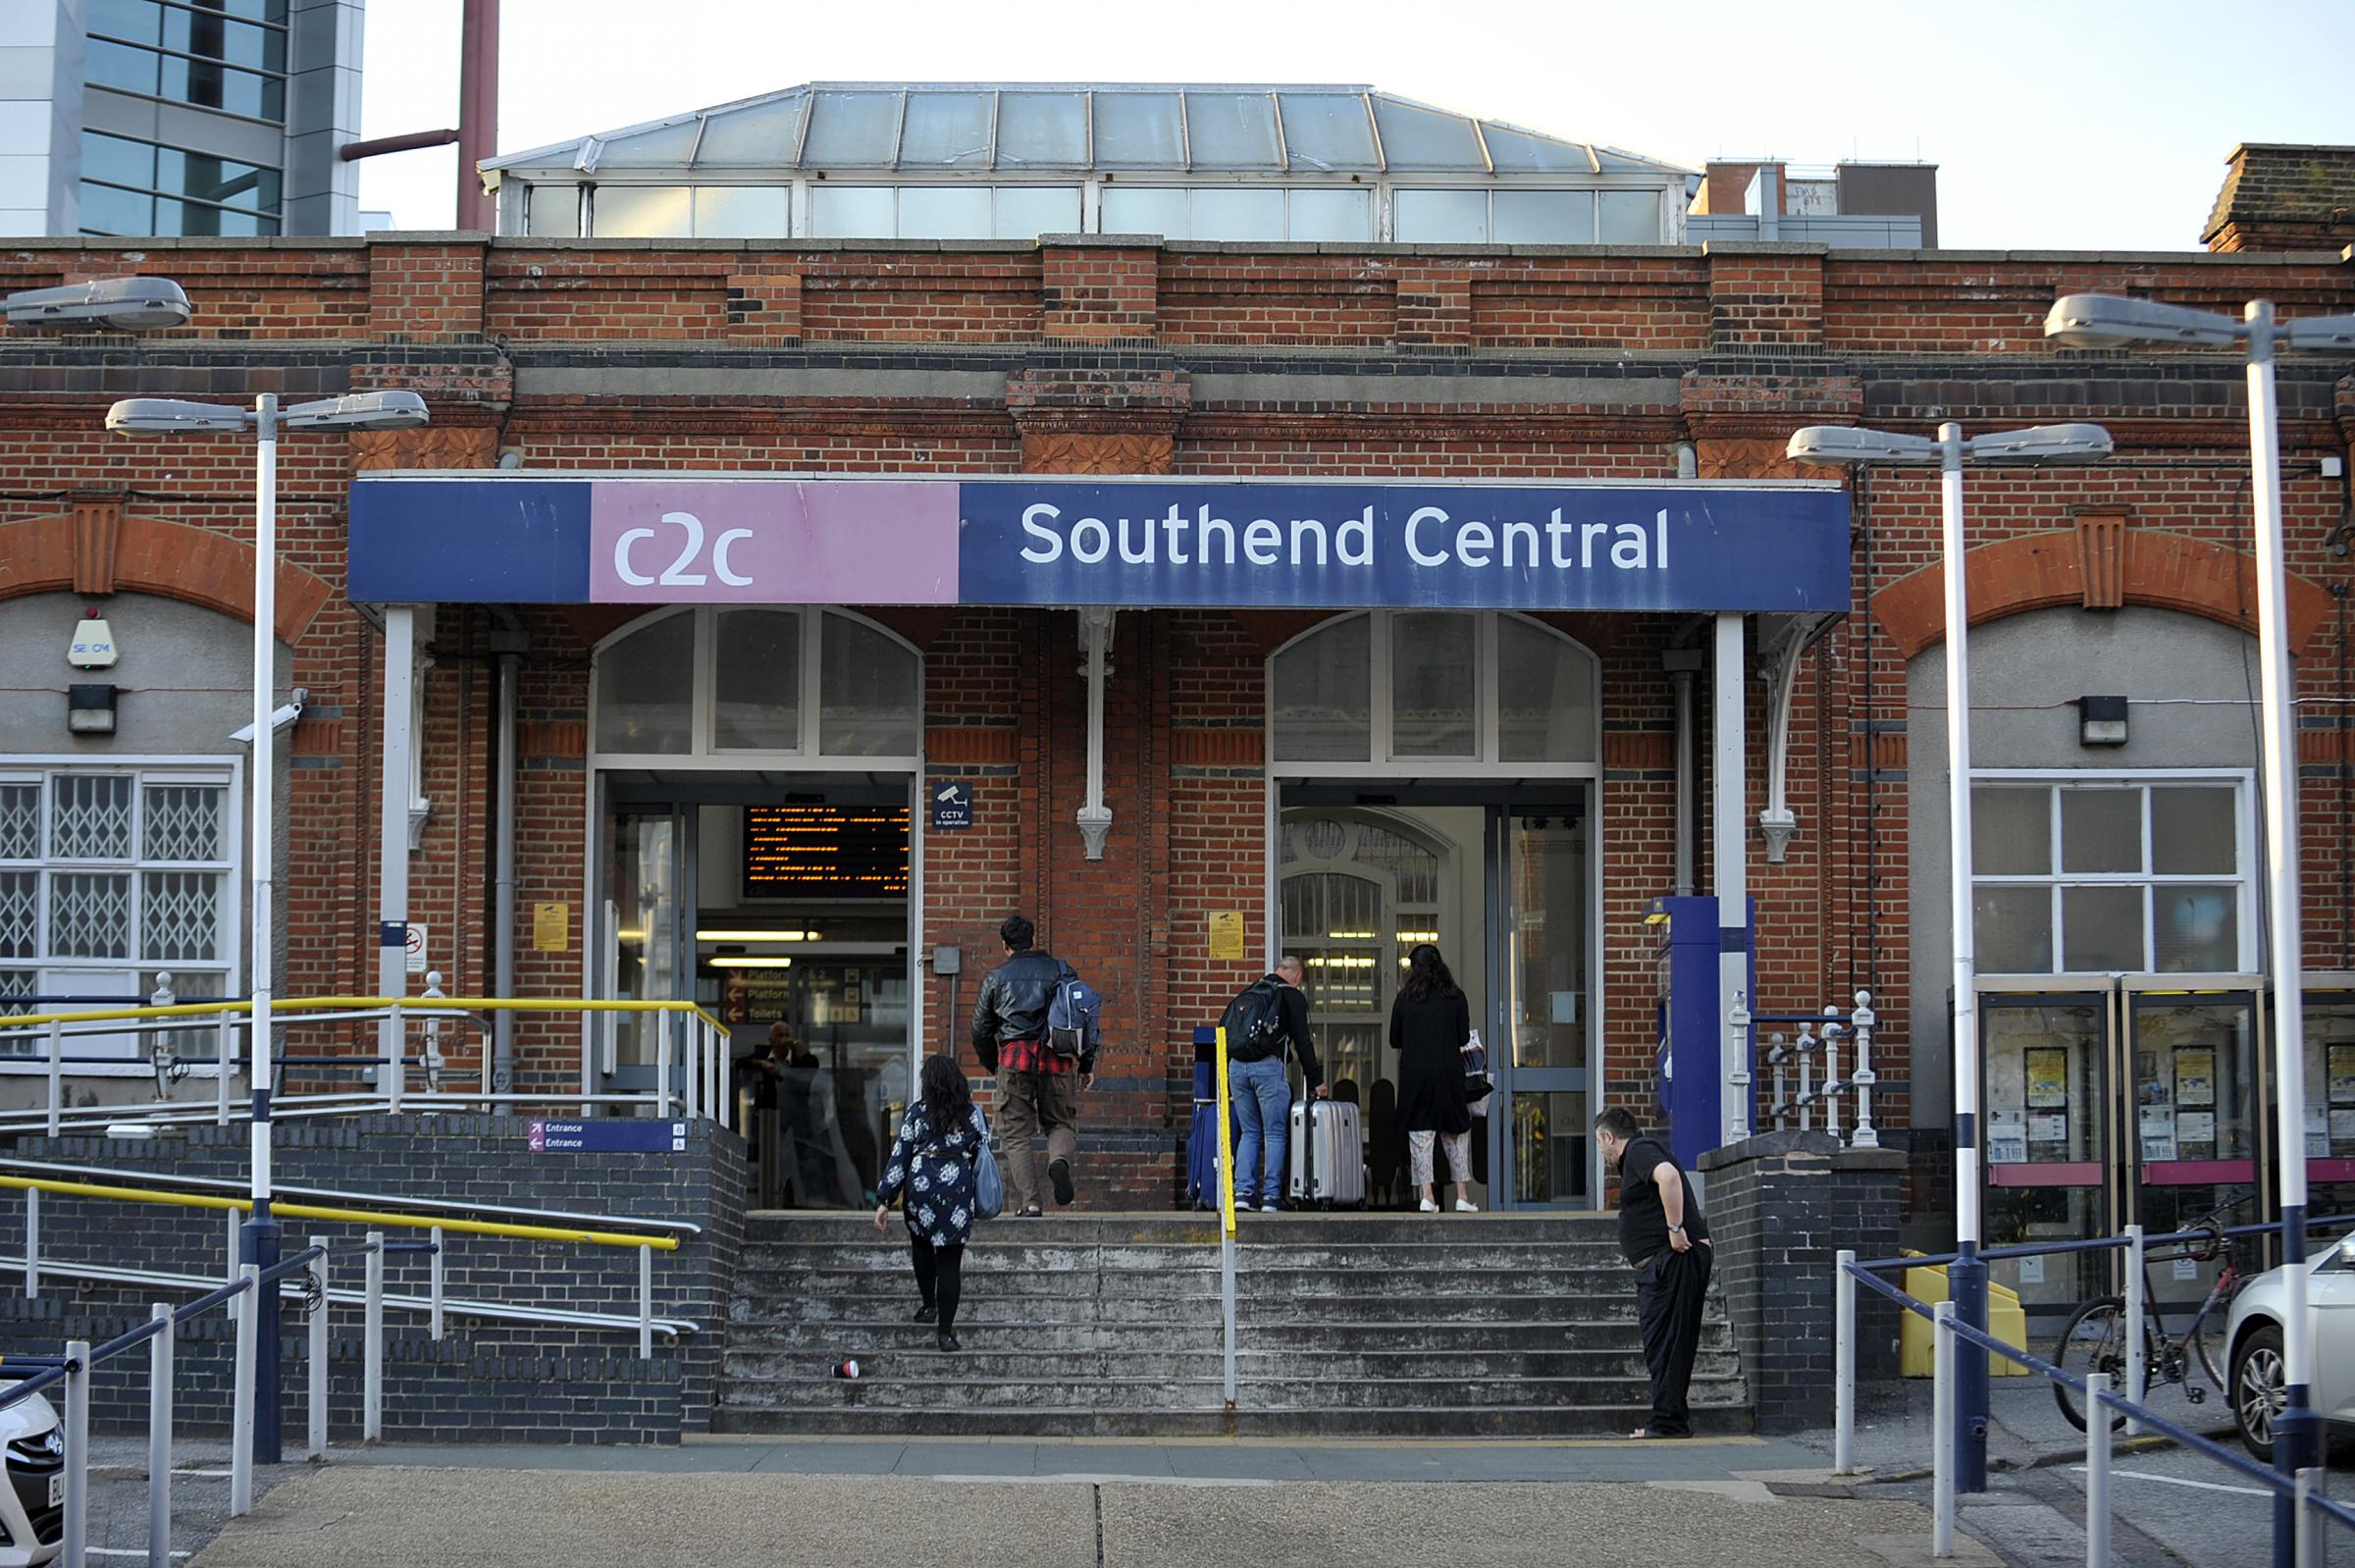 Reports of police incident causing delays at Southend Central Train Station